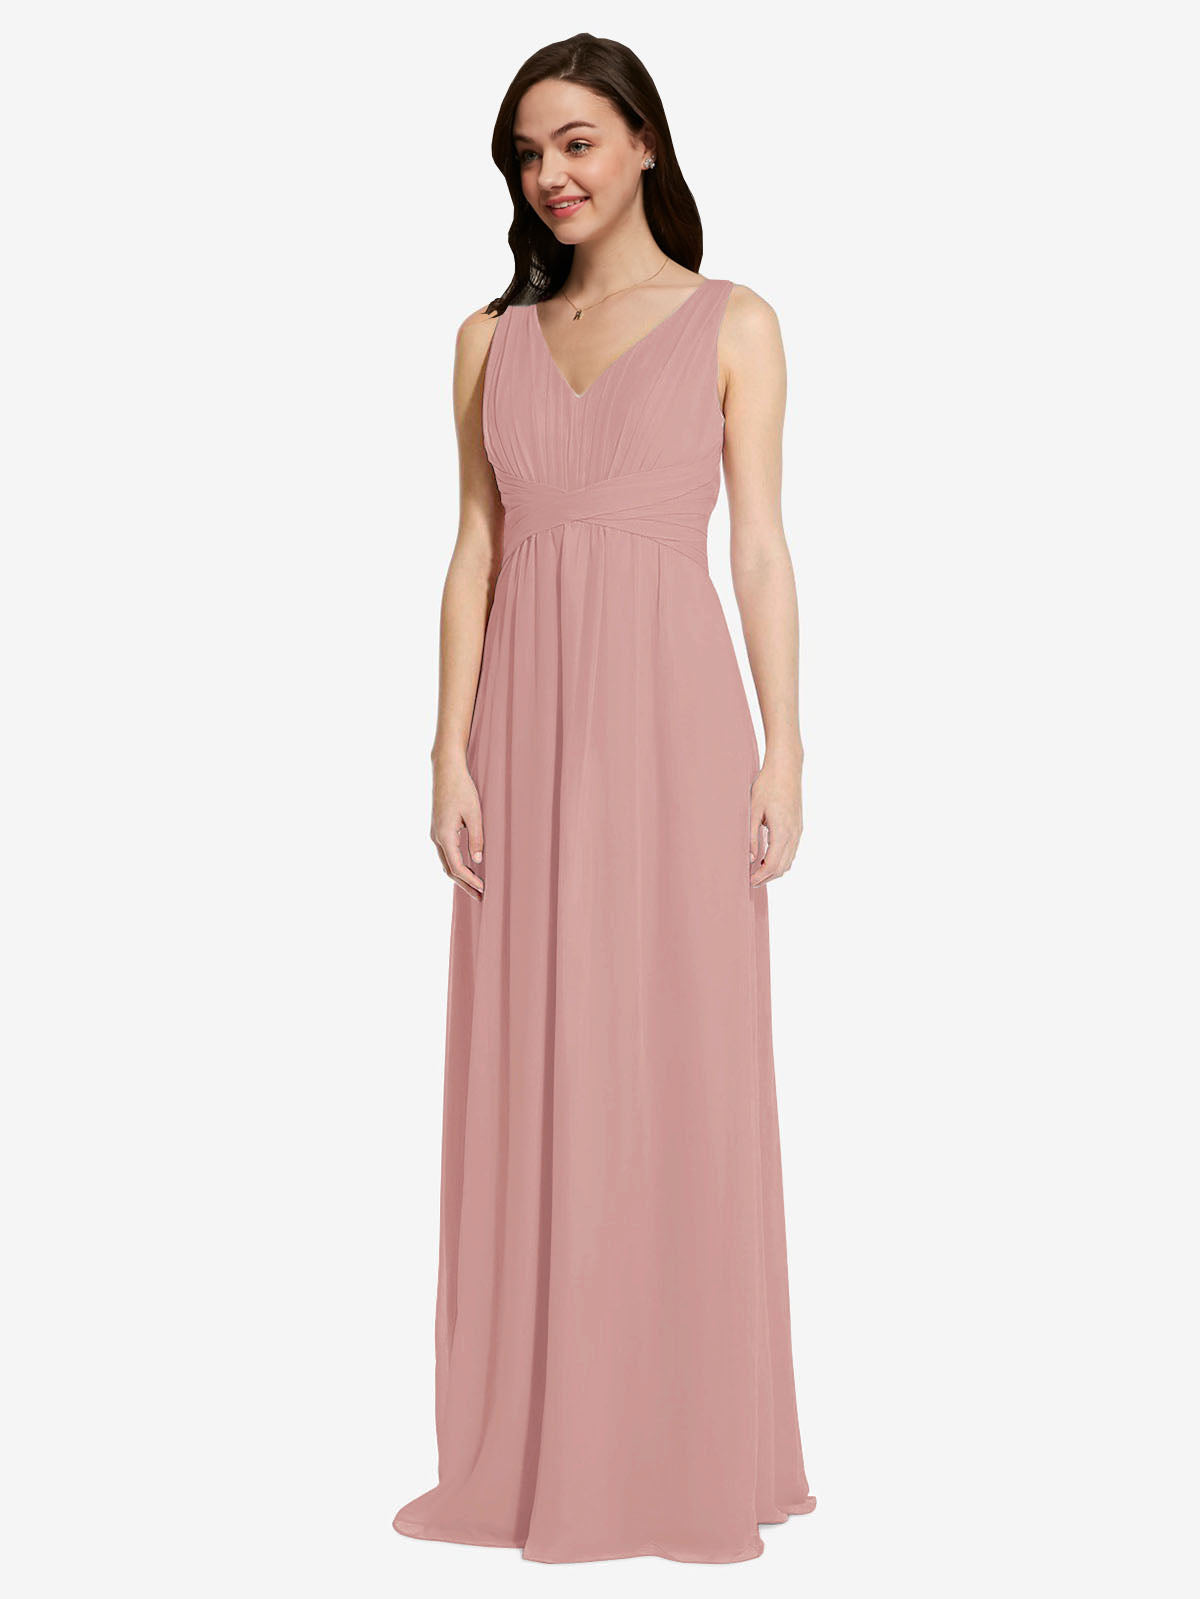 Long A-Line V-Neck Sleeveless Dusty Pink Chiffon Bridesmaid Dress Auckland